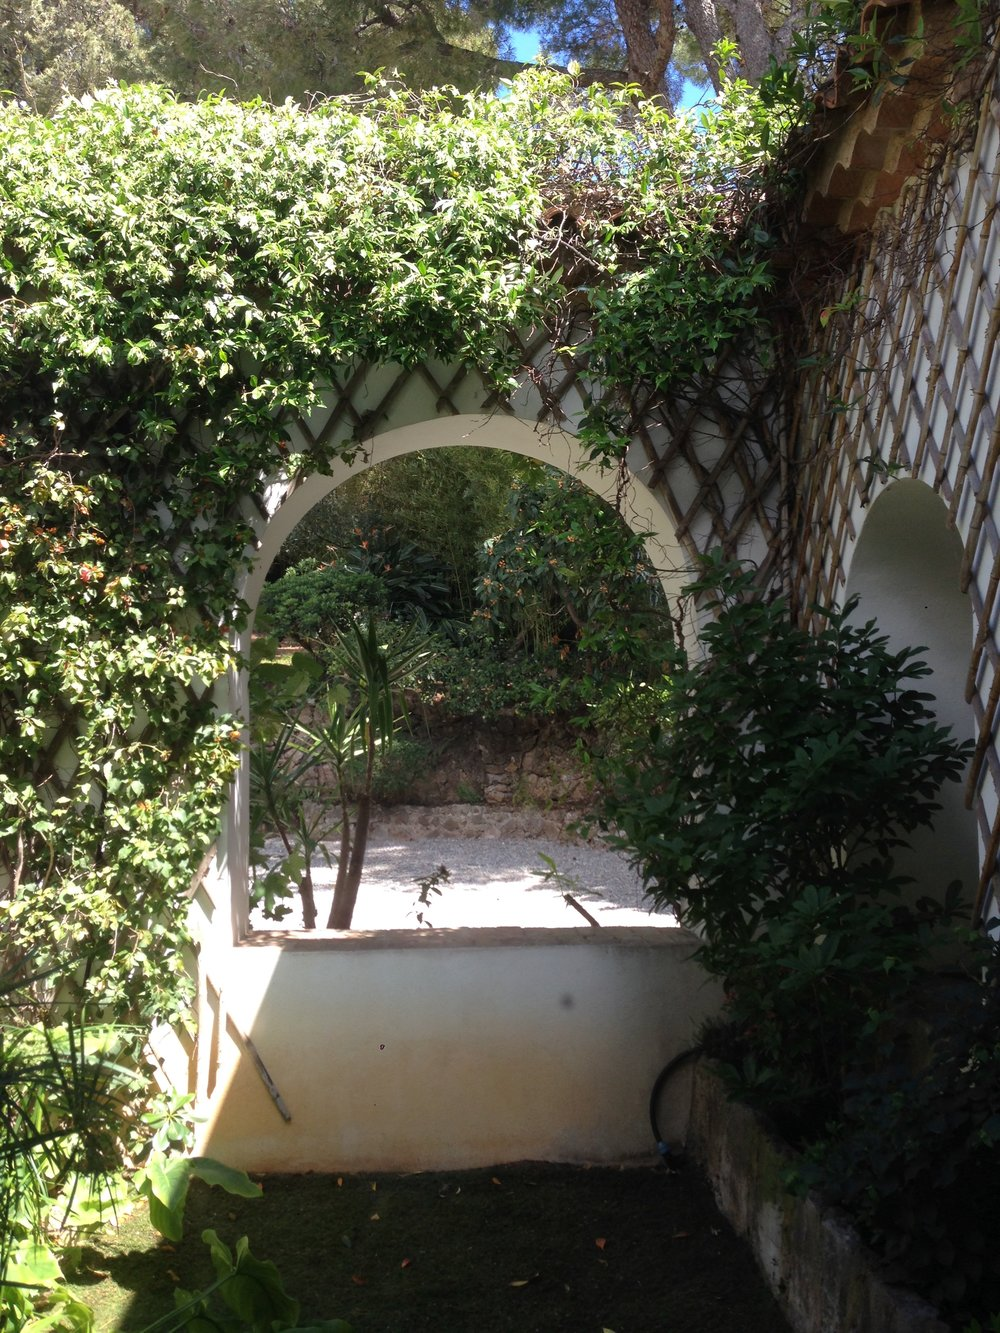 The courtyard at Villa Santo Sospir, with bamboo trellis, climbing vines and Cocteau mosaic, illustrated below.